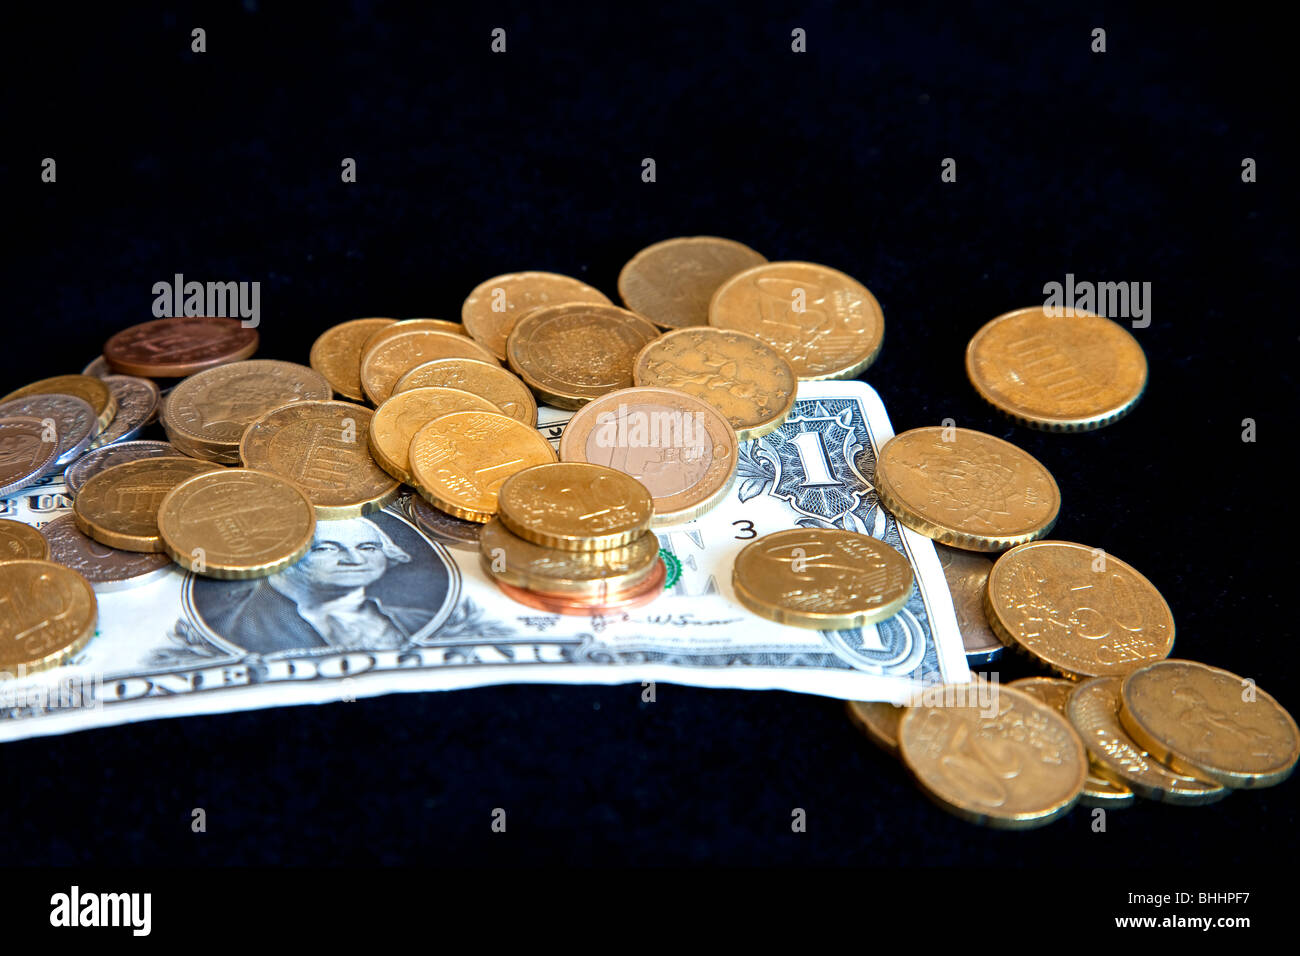 Euro coins on a US dollar with a black background - Stock Image